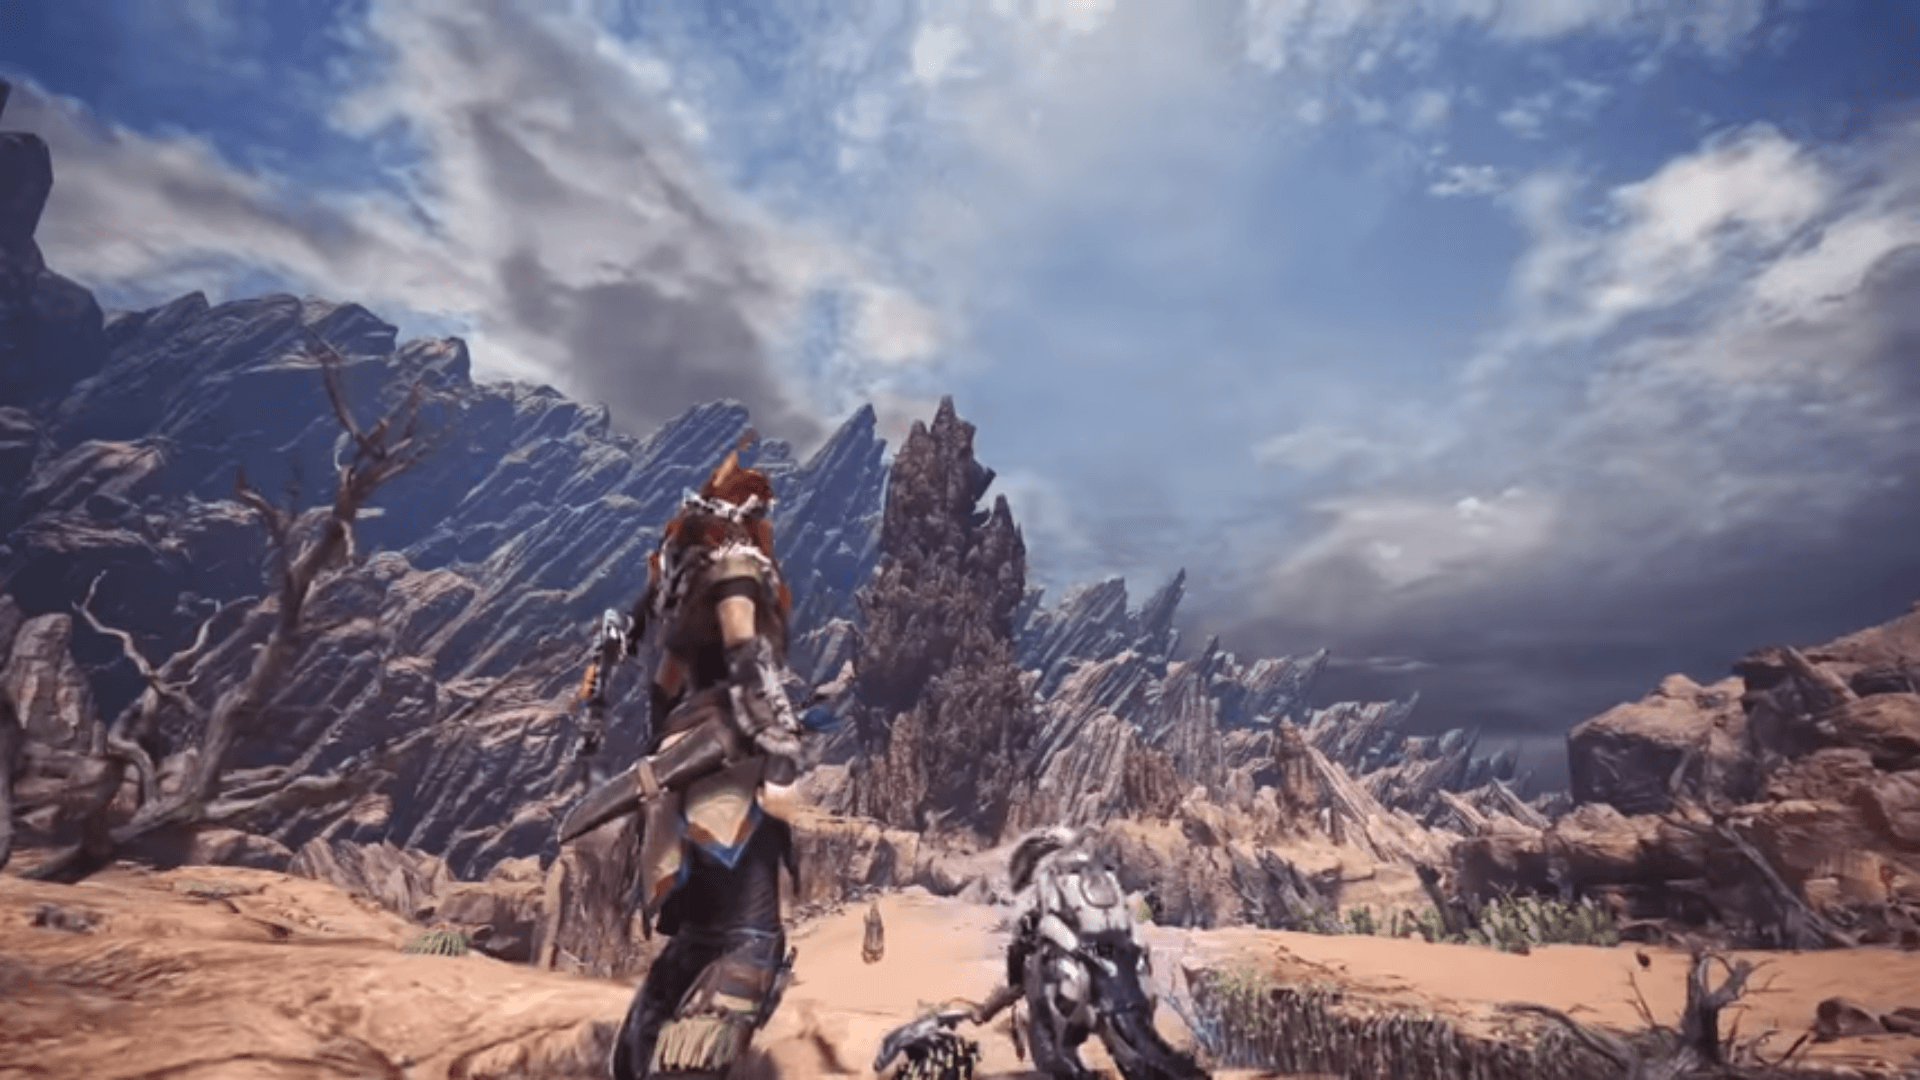 Capcom Has Some Cool DLC Planned for Monster Hunter: World – GameCuddle